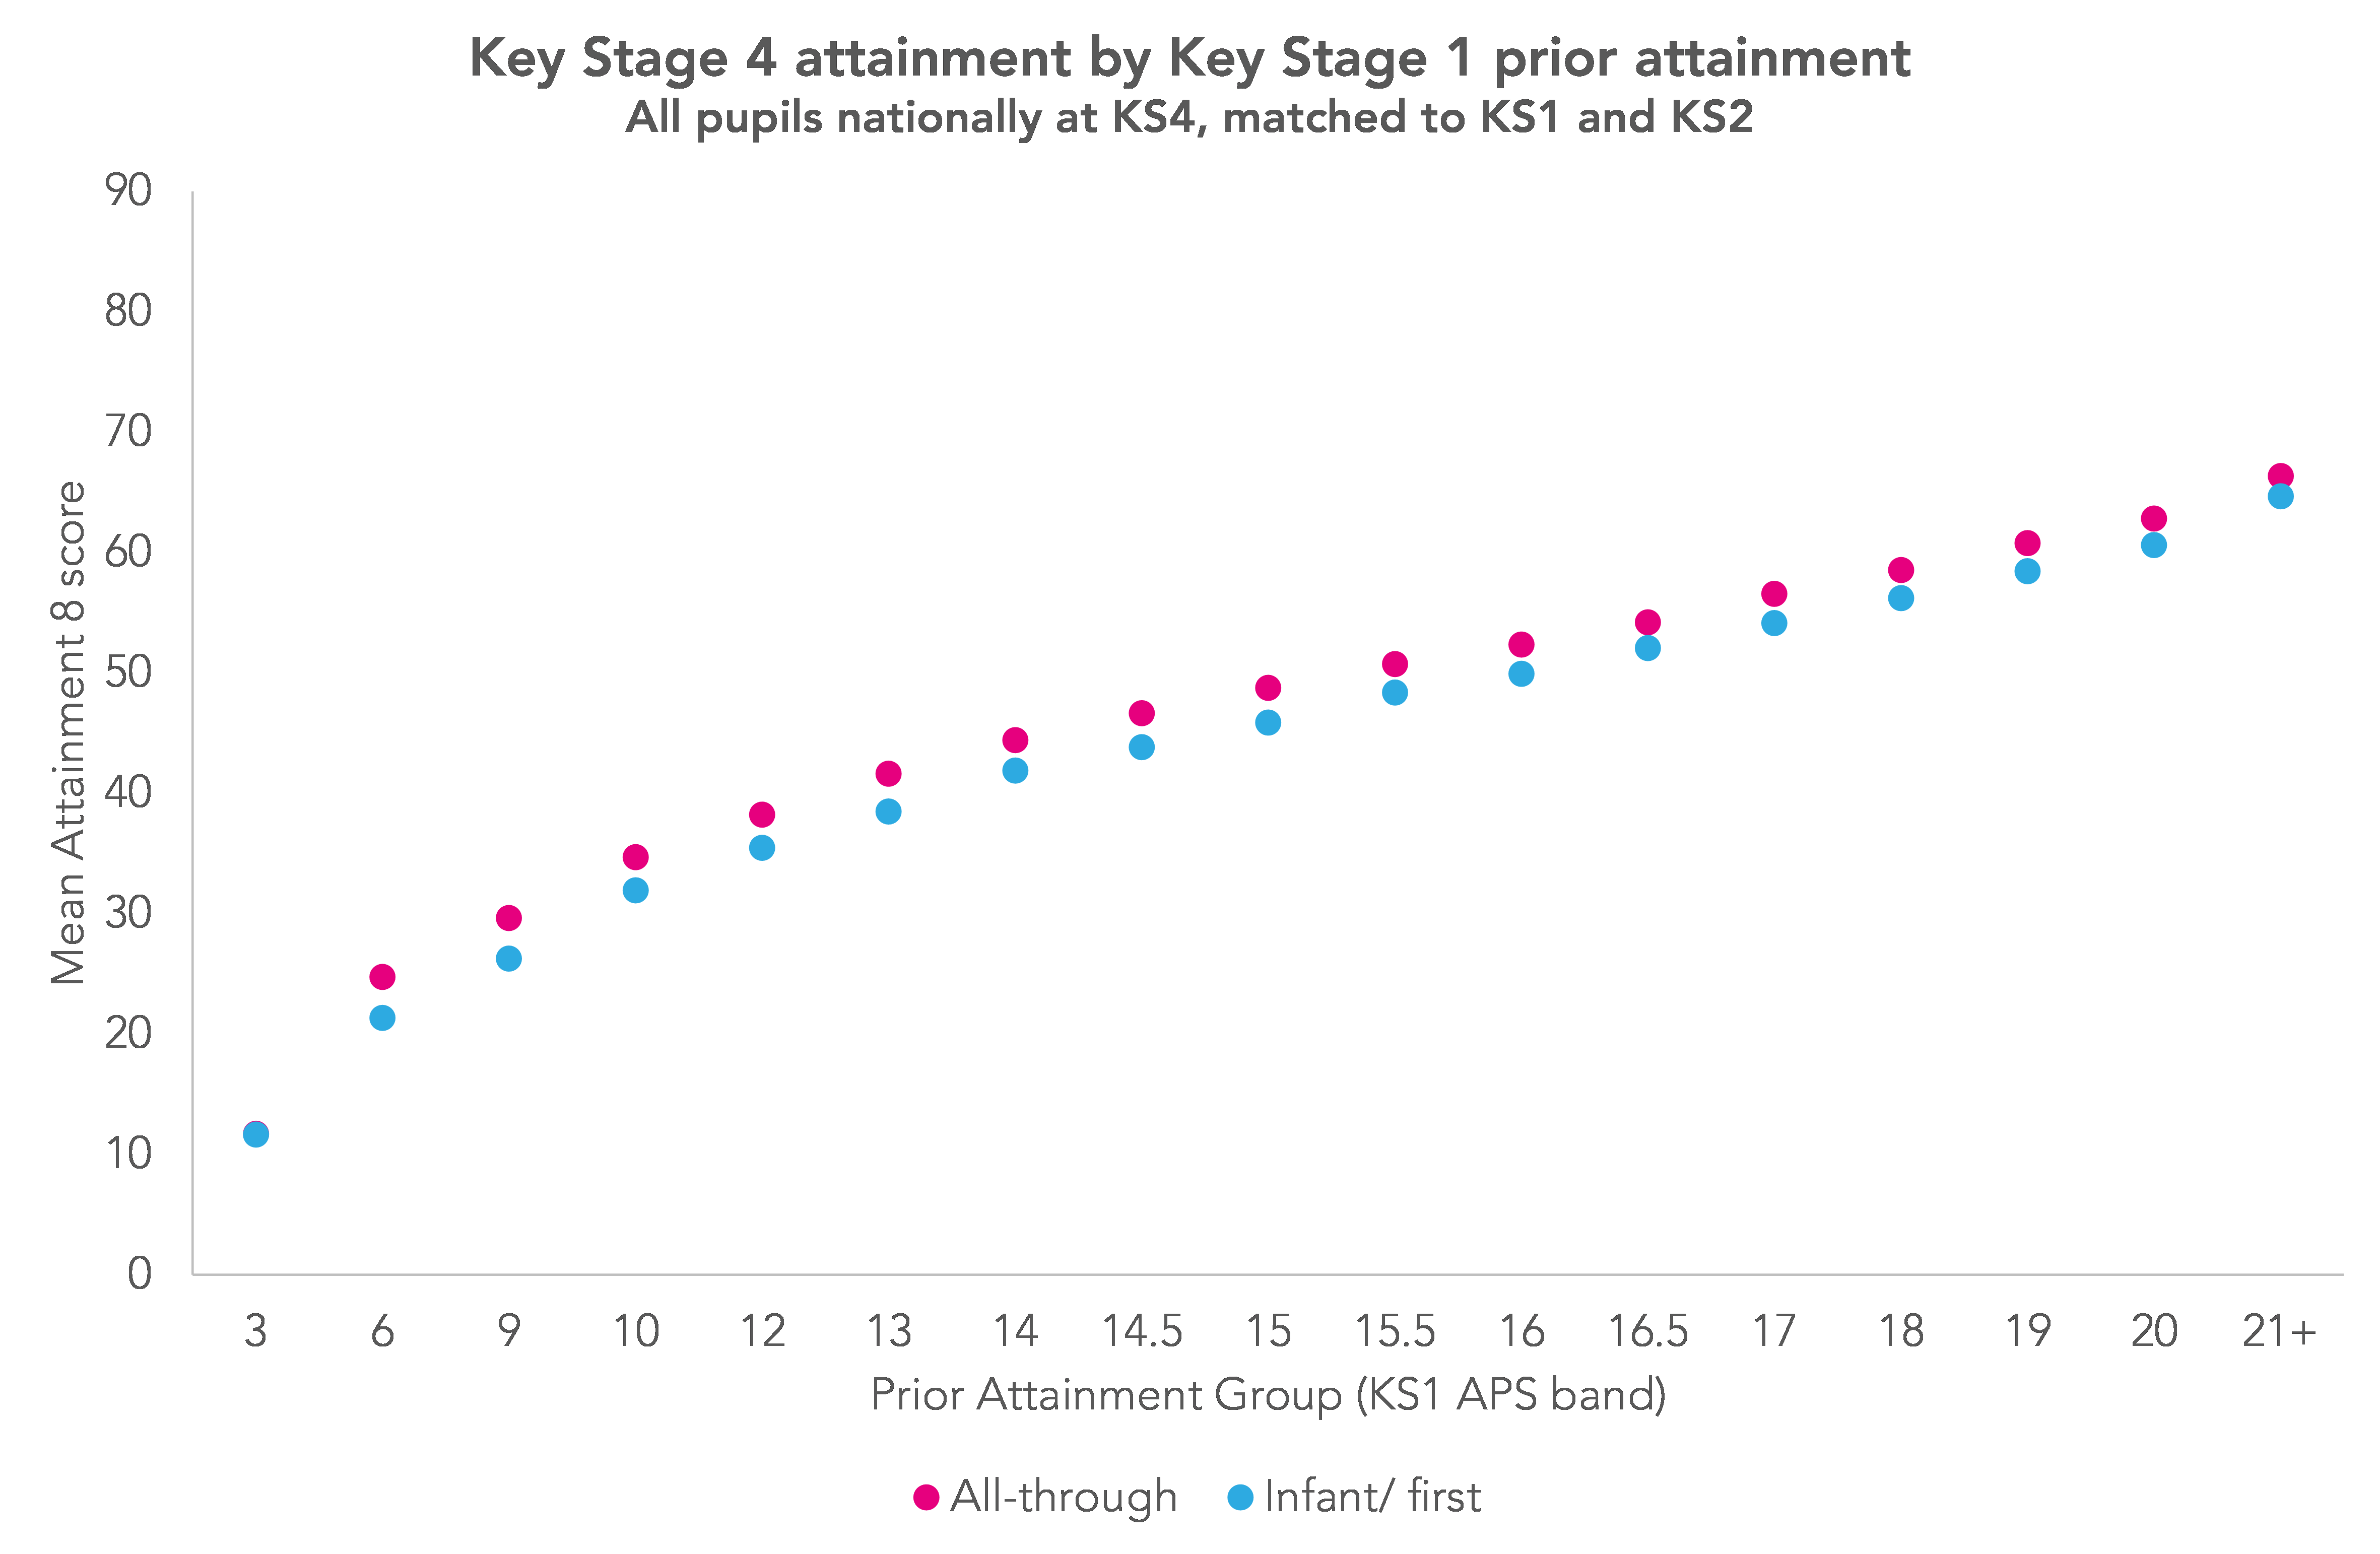 Why do pupils who went to infant and first schools appear to underperform at Key Stage 4?